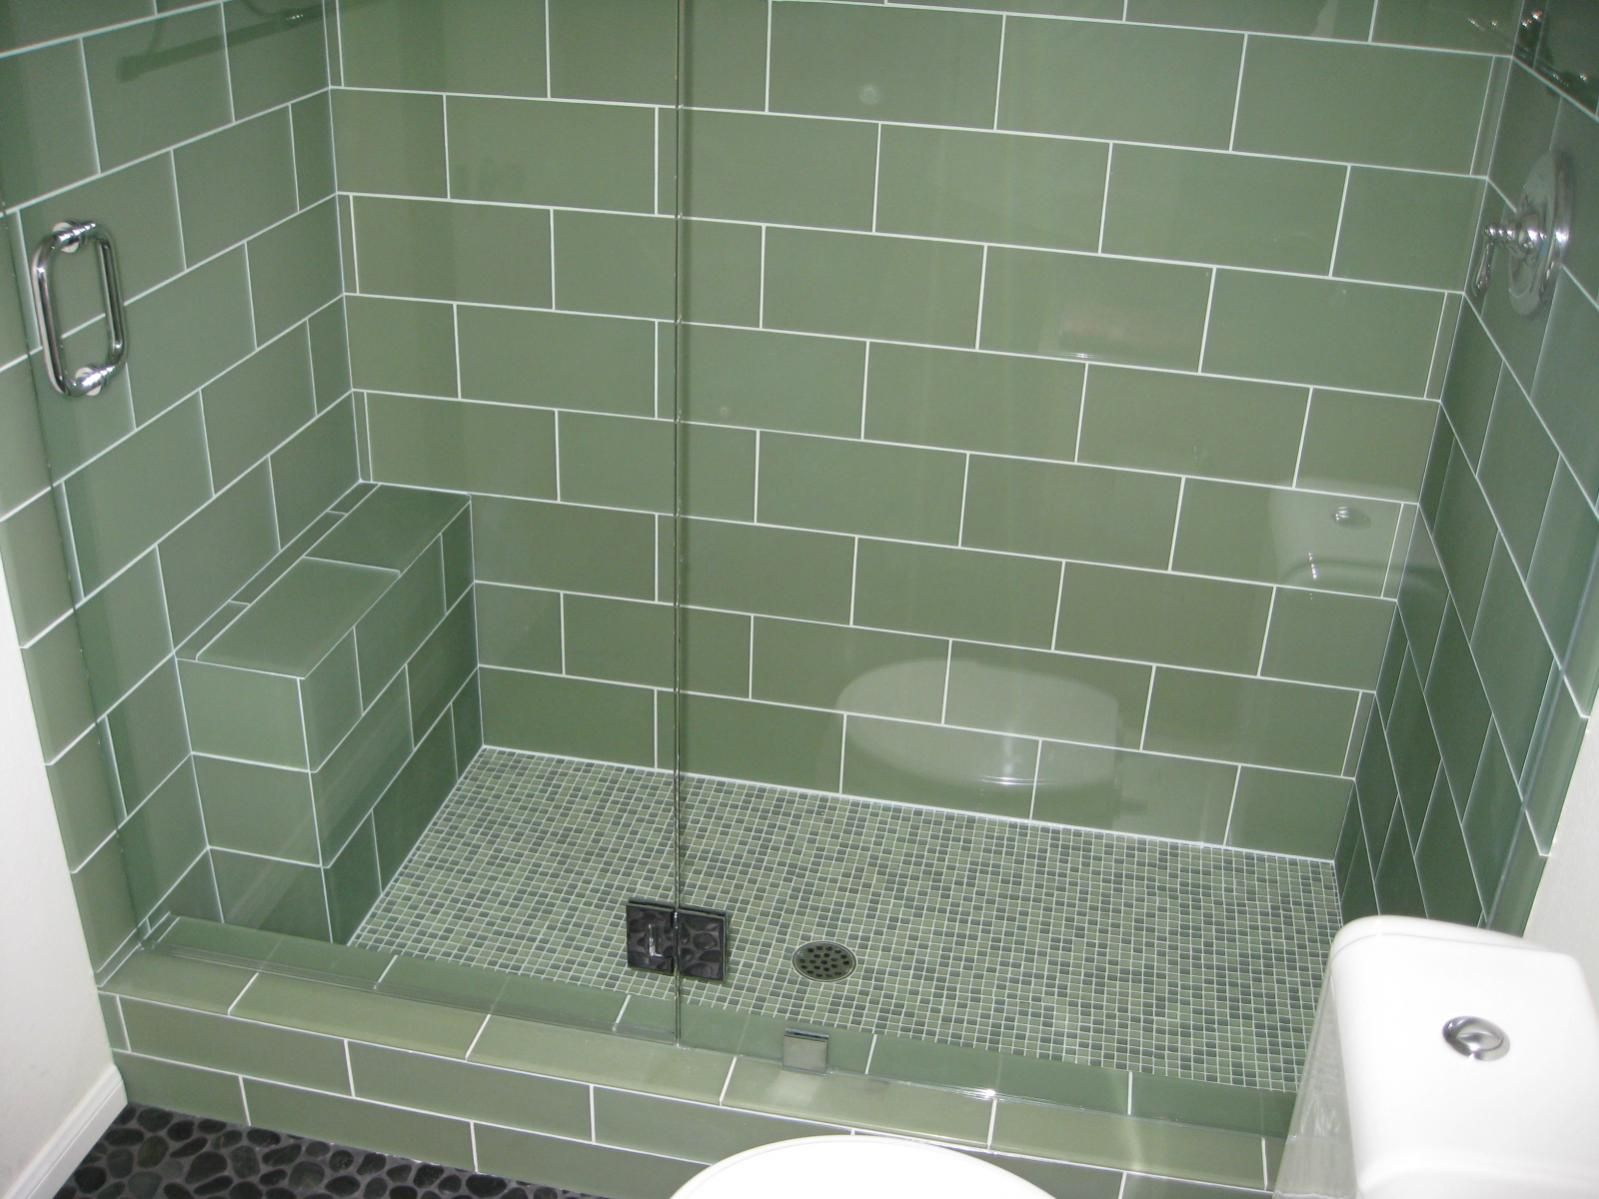 pebble stone shower floor with subway tile and glass doors